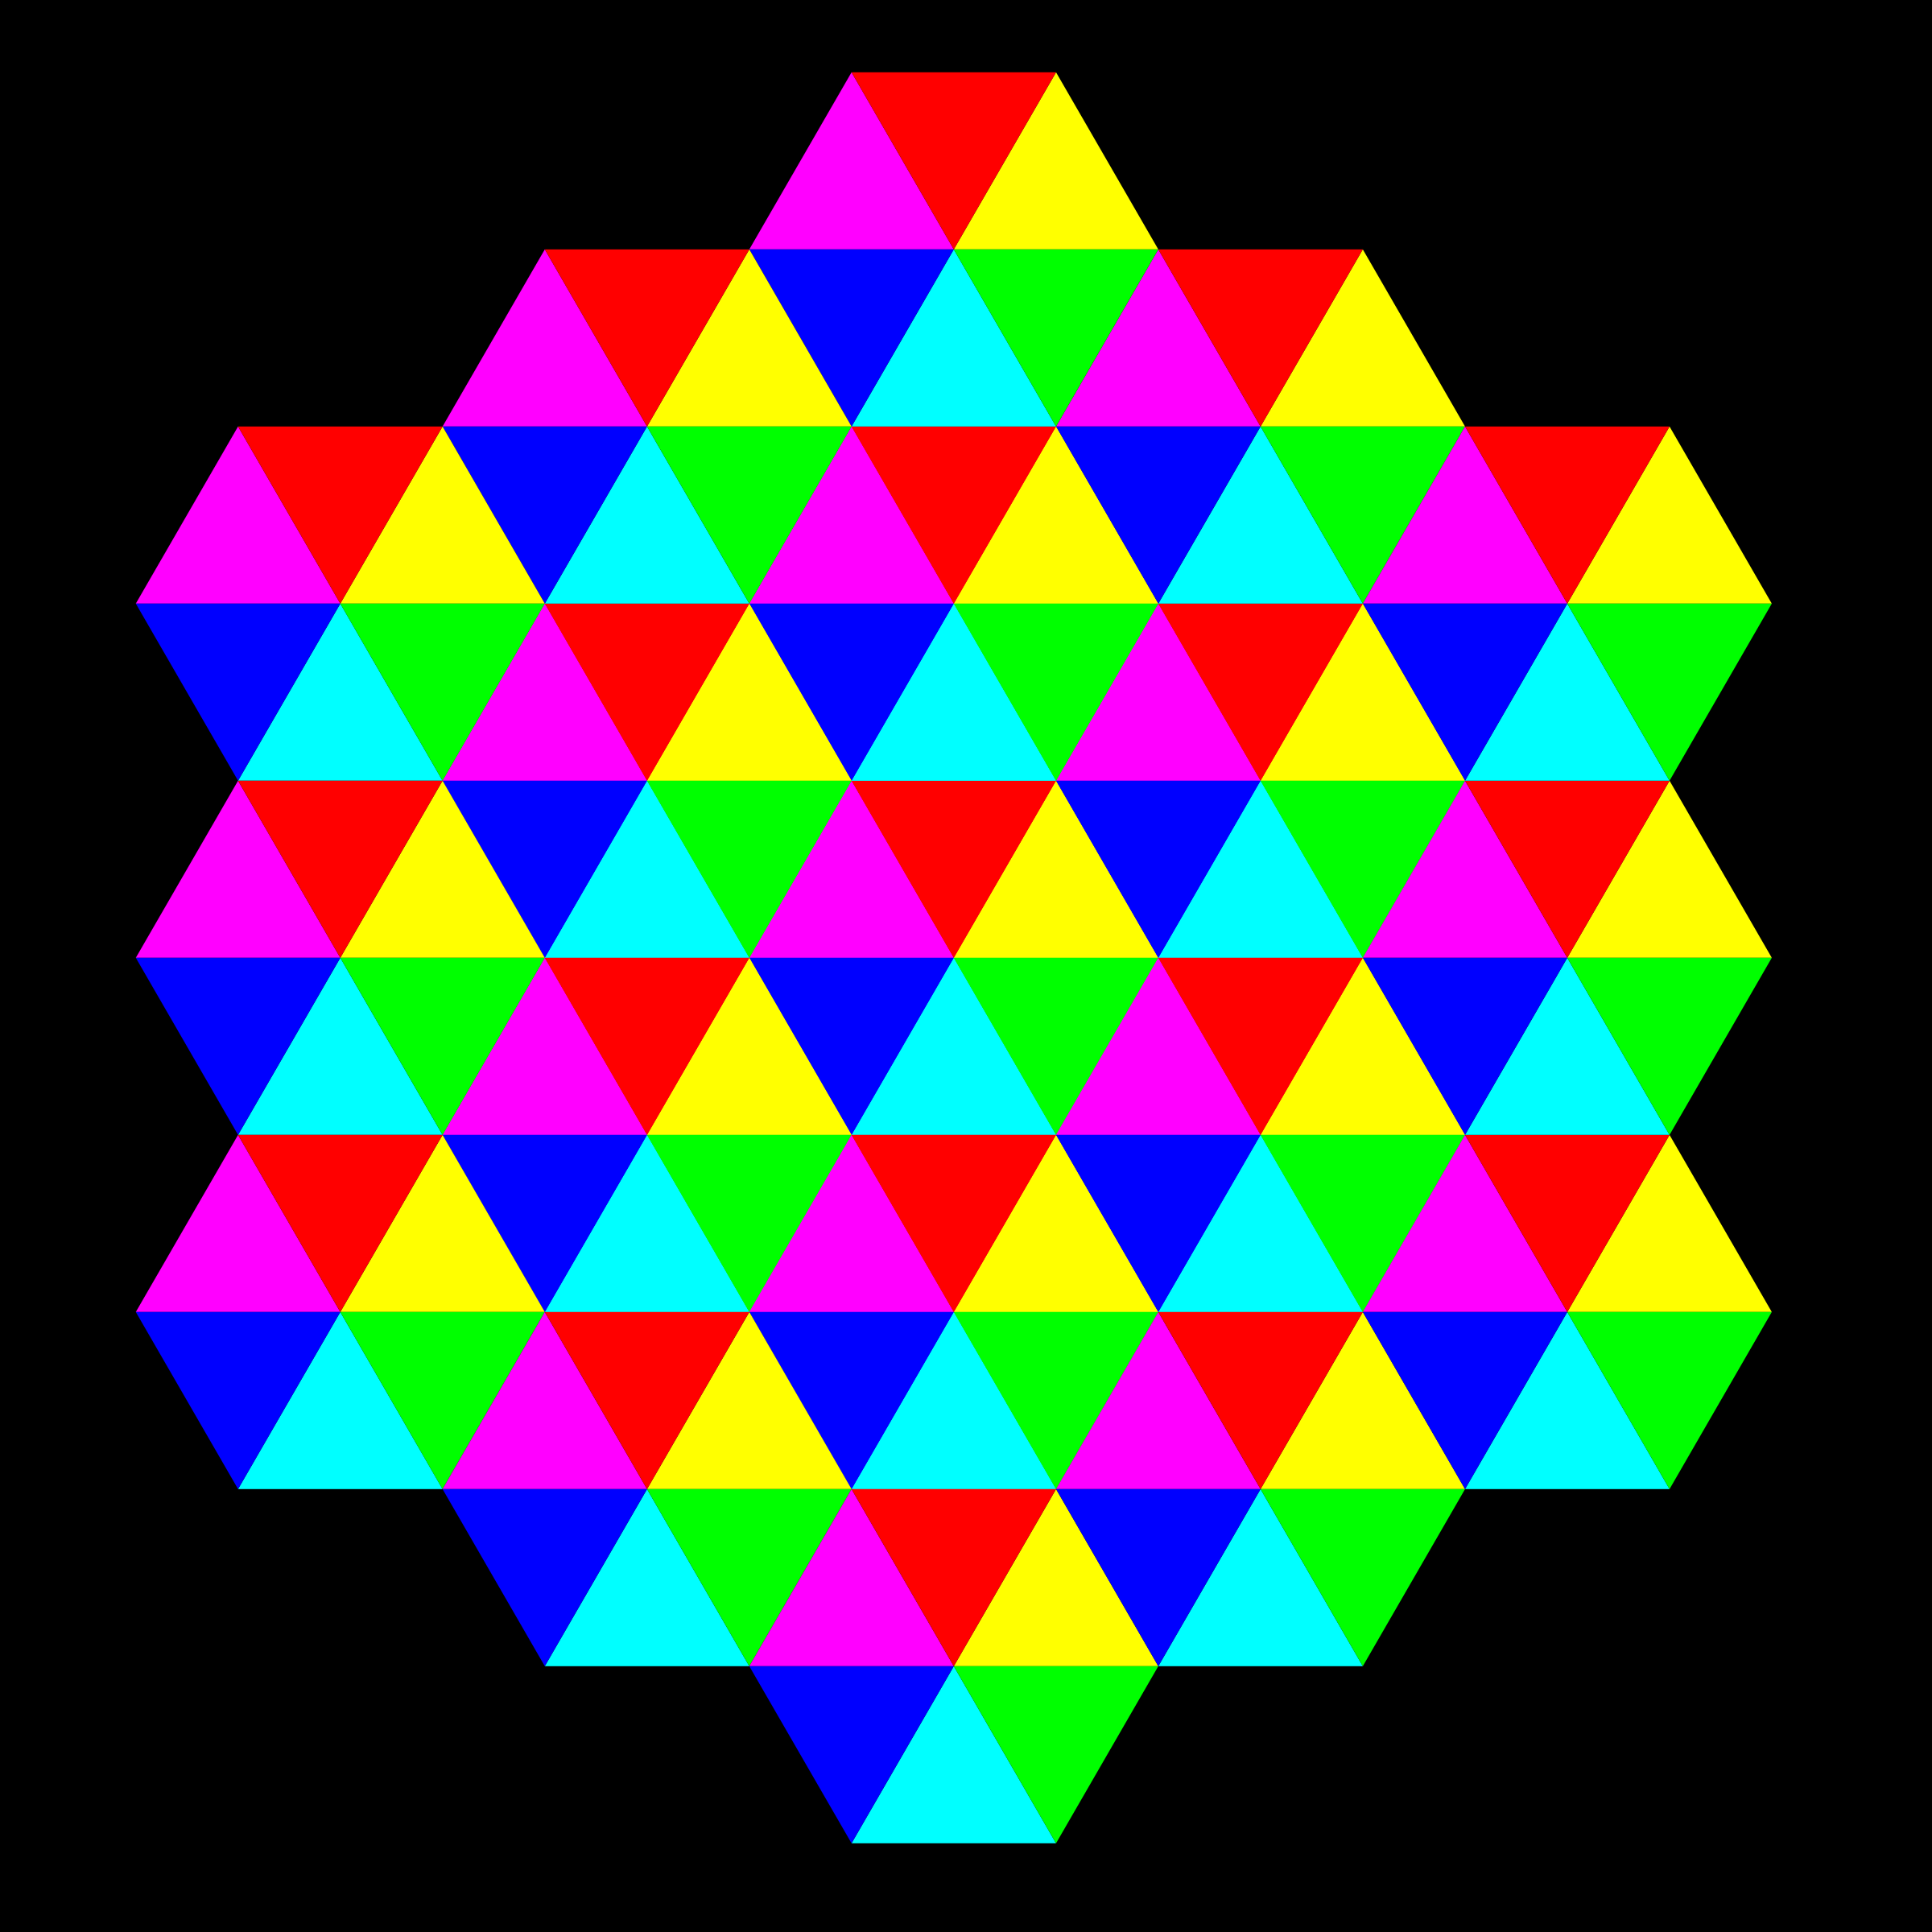 Triangle Tessellation 6 Color By 10binary